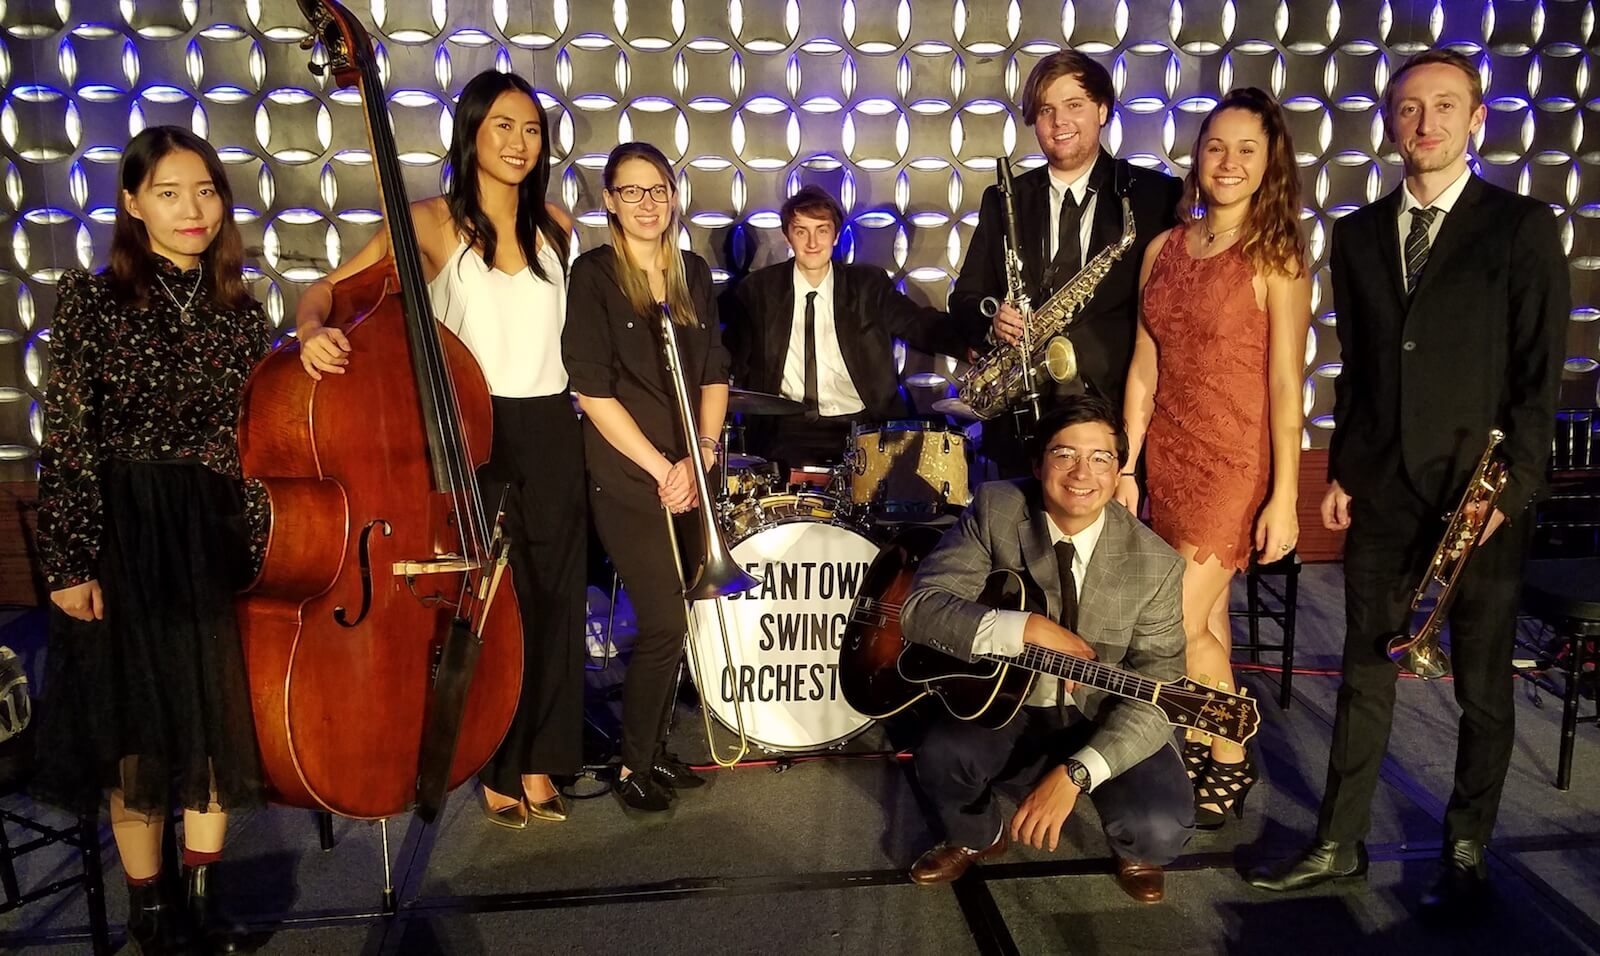 Beantown Swing Orchestra 8-piece group